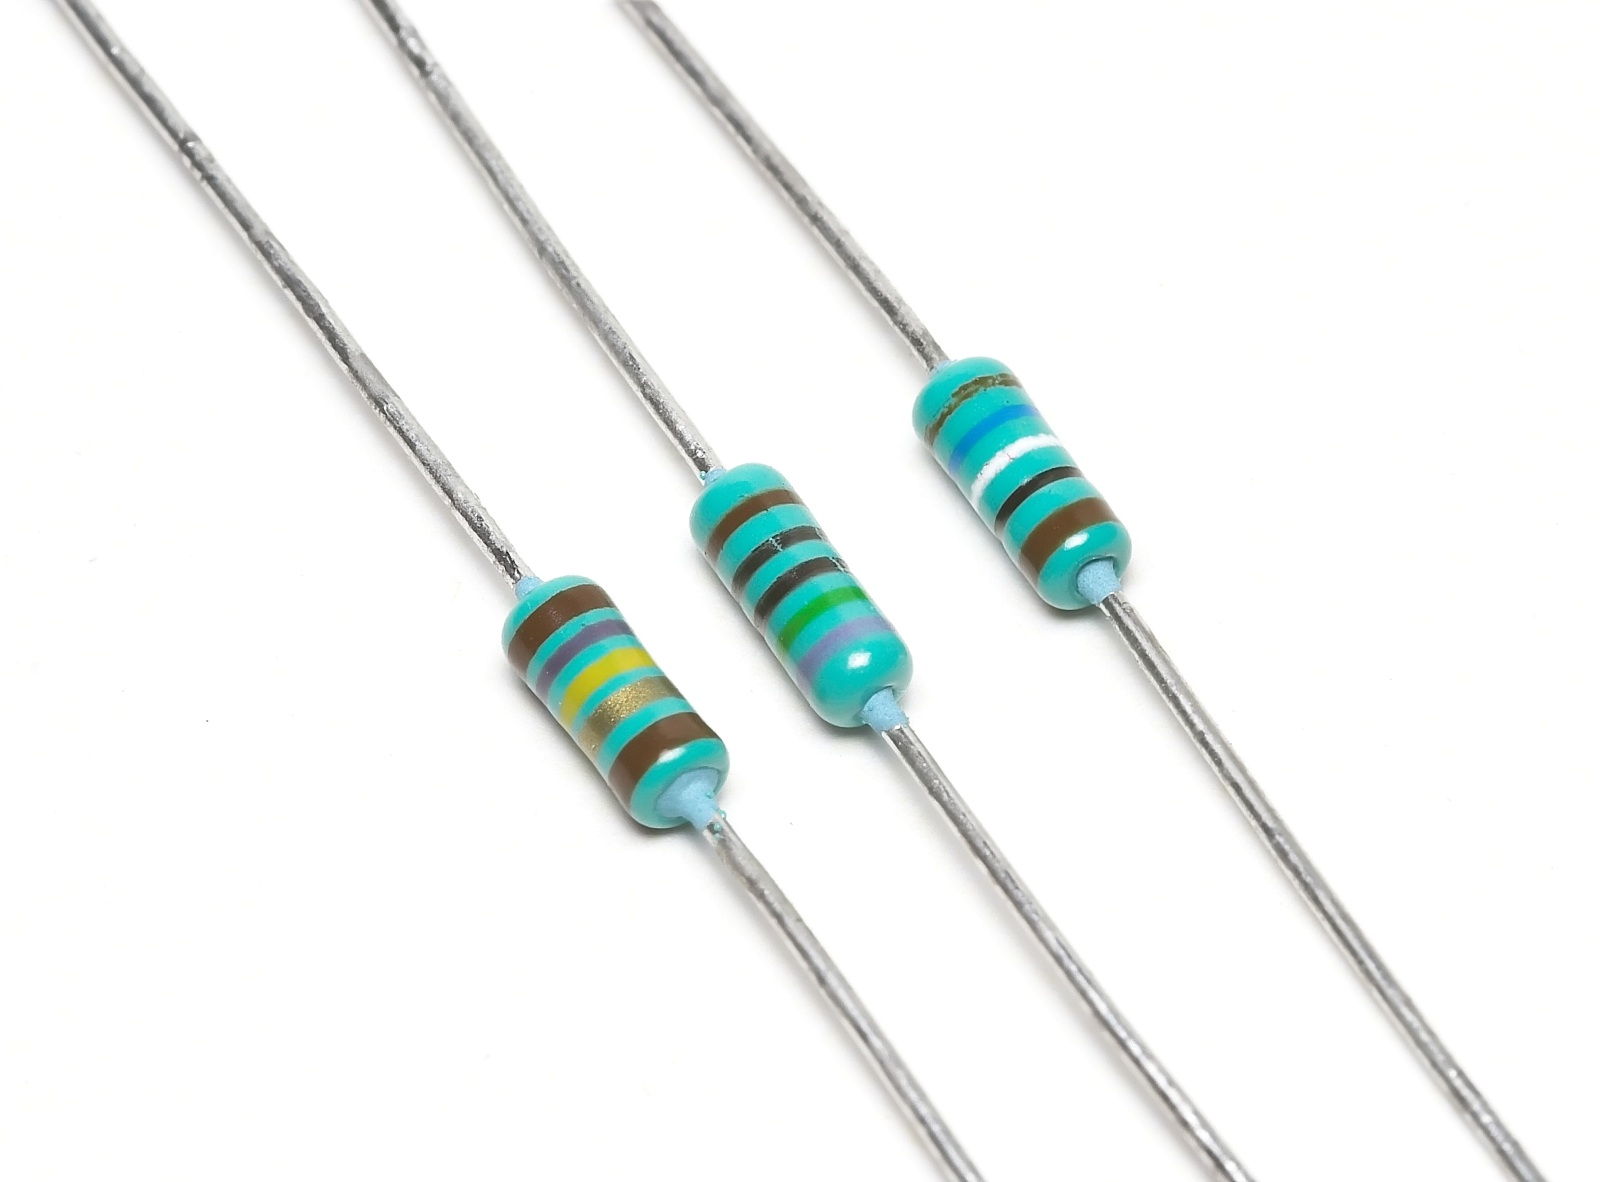 hight resolution of resistors with wire leads for through hole mounting